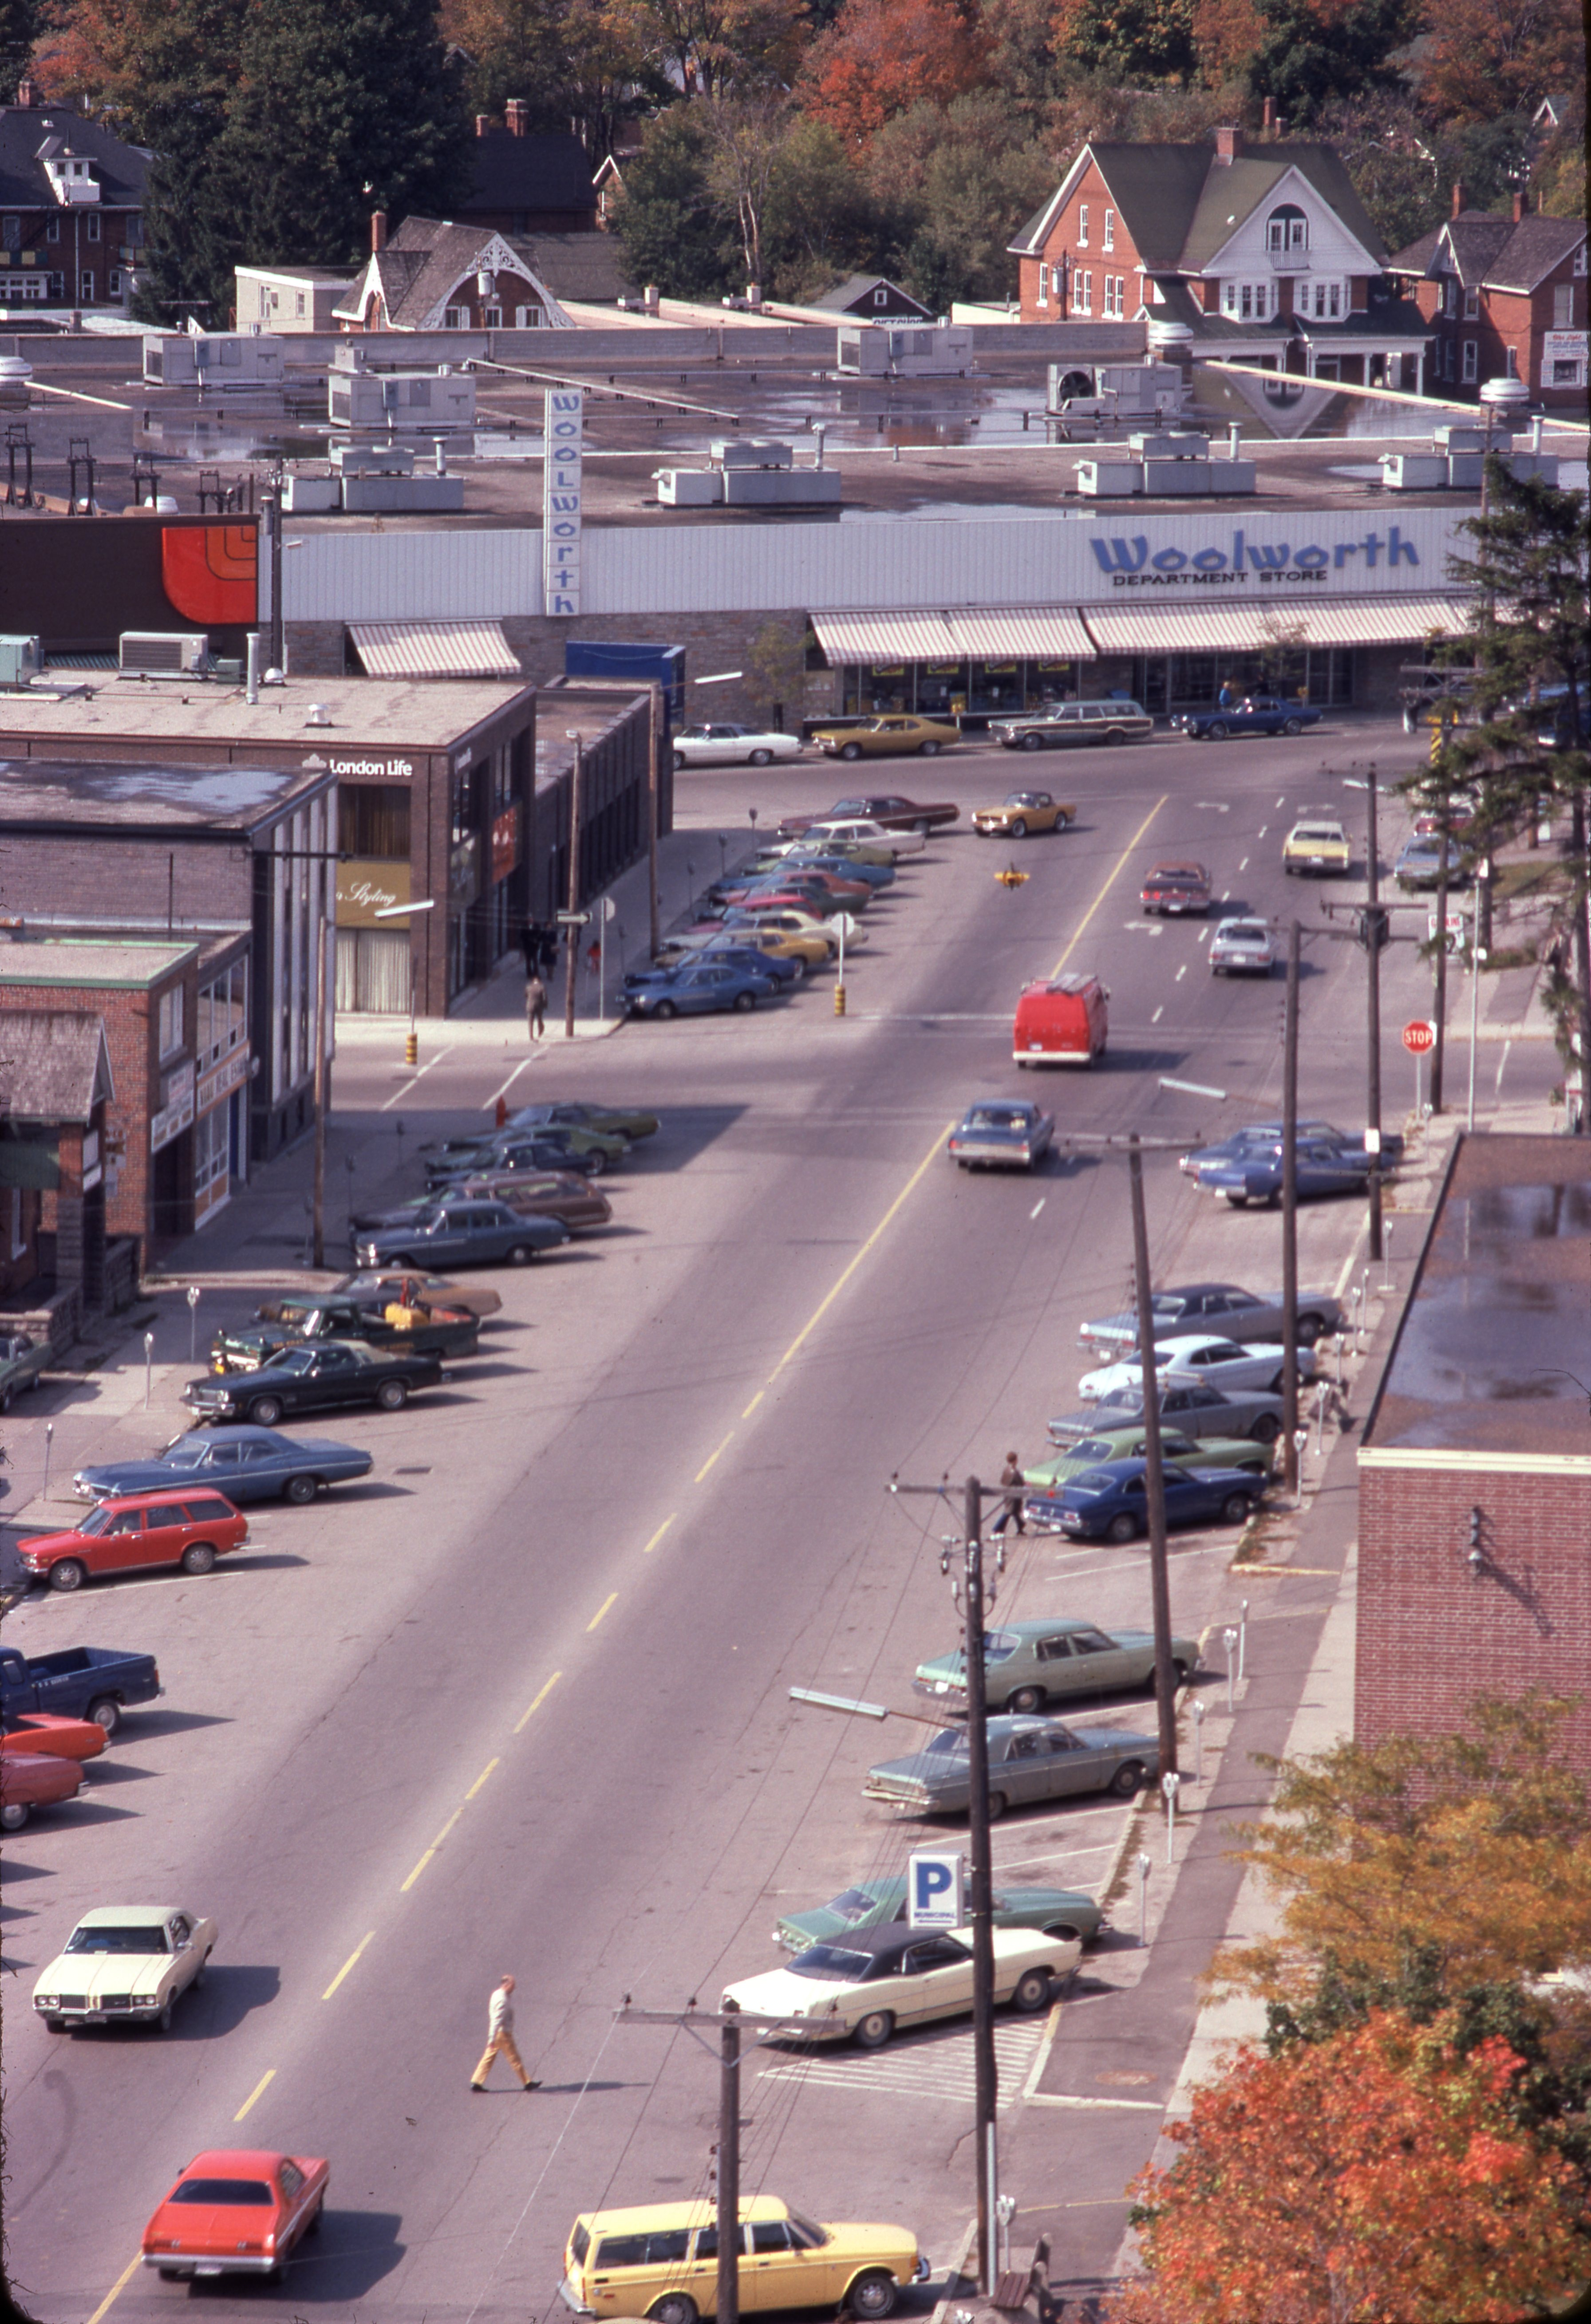 1974-10-Downtown-Looking West down Collier Street towards Woolworth's and Loblaws on Bayfield Street